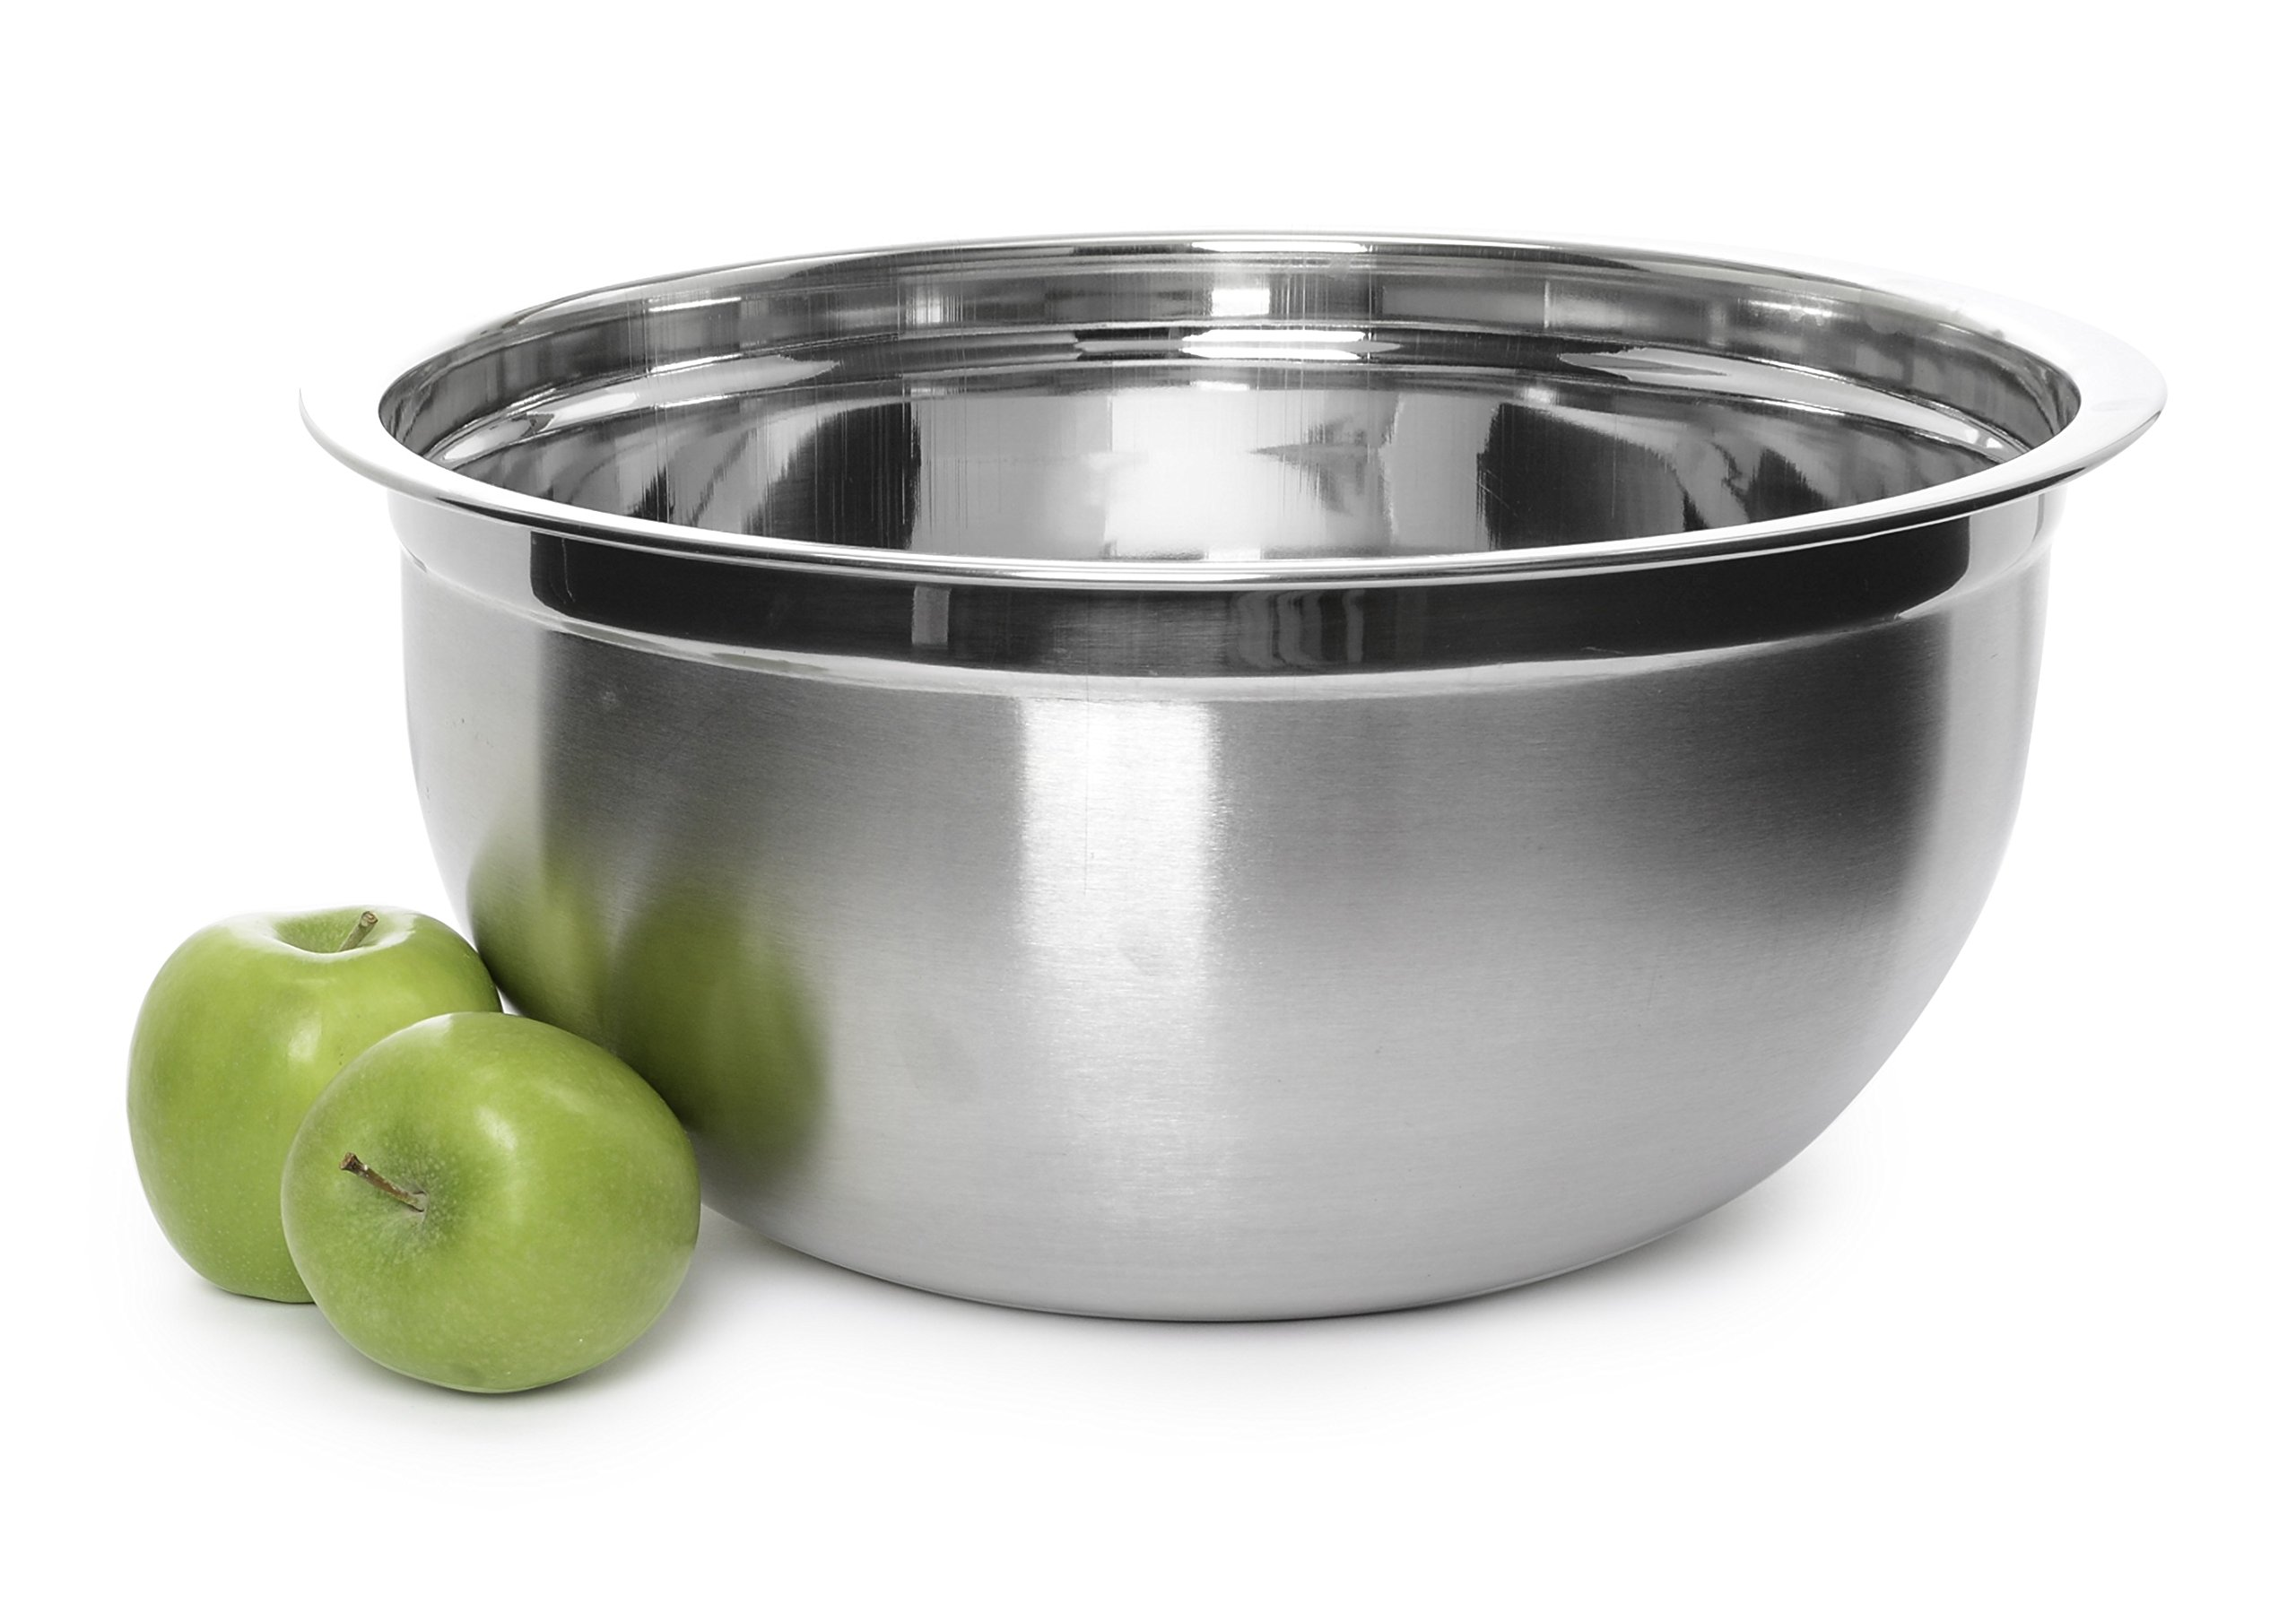 YBM Home Deep Professional Quality Stainless Steel Mixing Bowl For Serving, Mixing, Baking Cooking 1193 (1, 20 Quart)